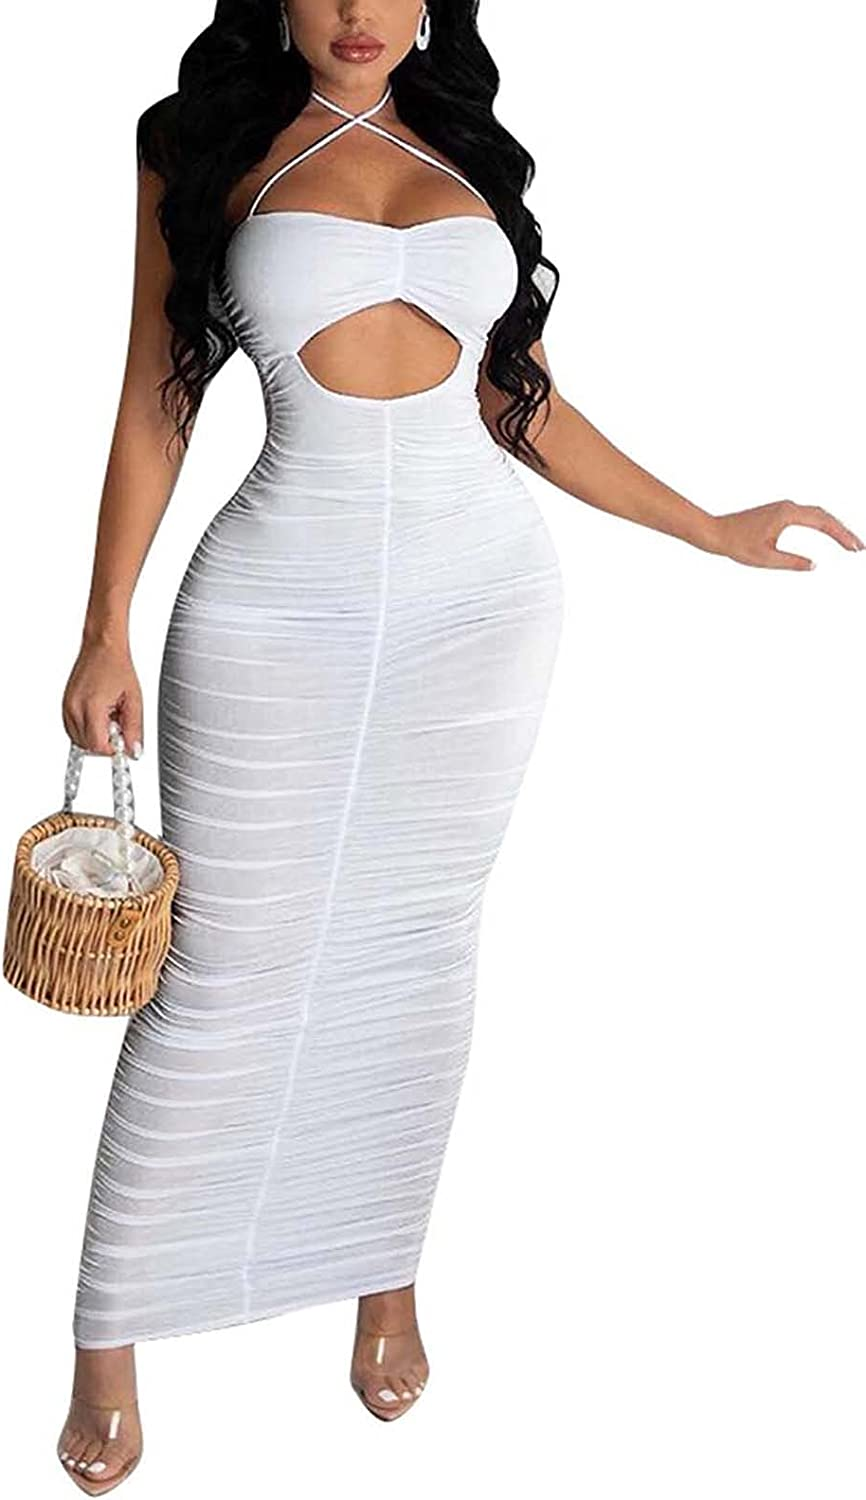 Women's Sexy Club Dress Solid Color Sleeveless Criss Cross Spaghetti Strap Hollow Out Bodycon Ruched Maxi Dress